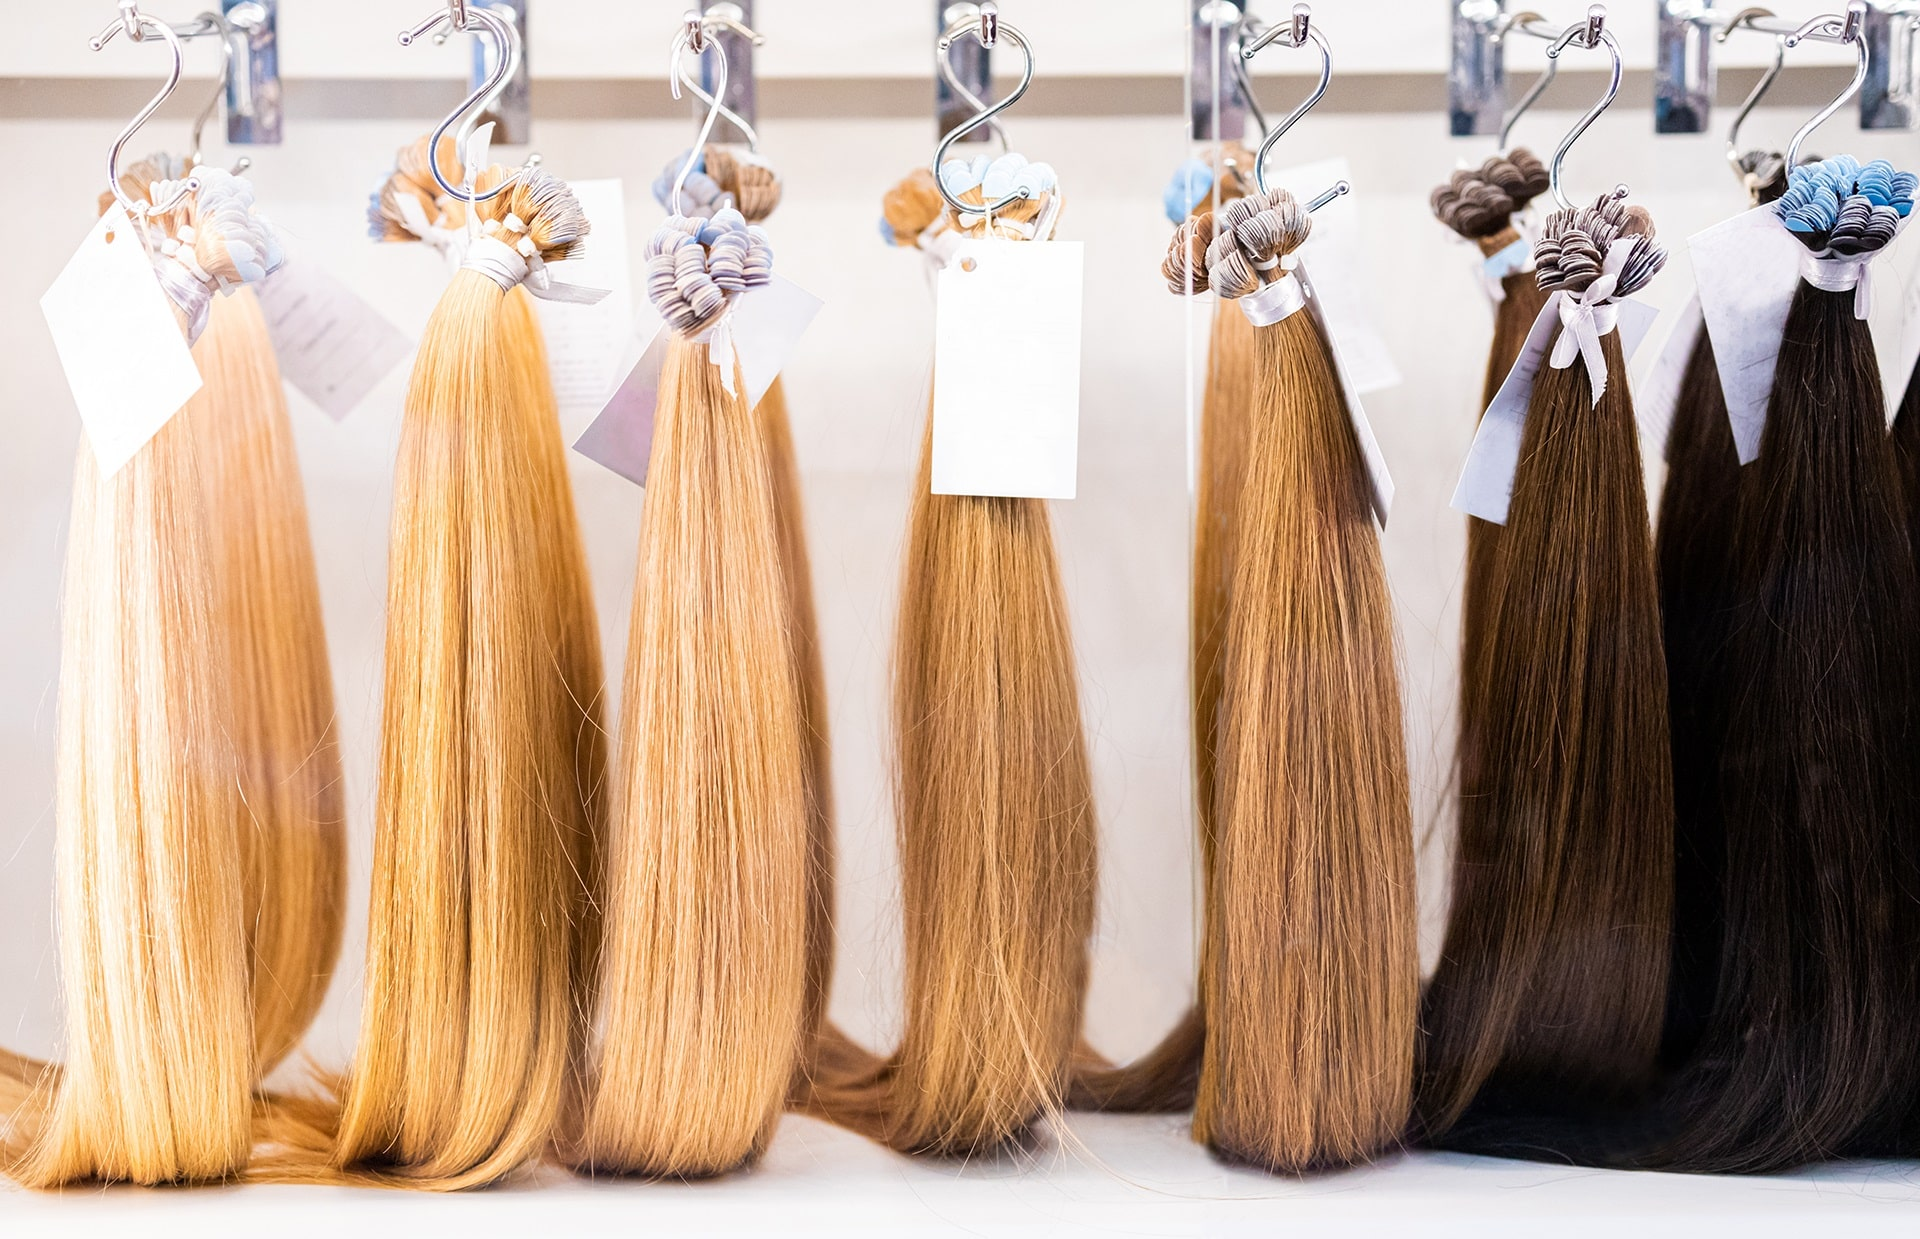 Exhibition of Multicolored Clip-In Hair Extensions in Beauty saloon - SolVibrations